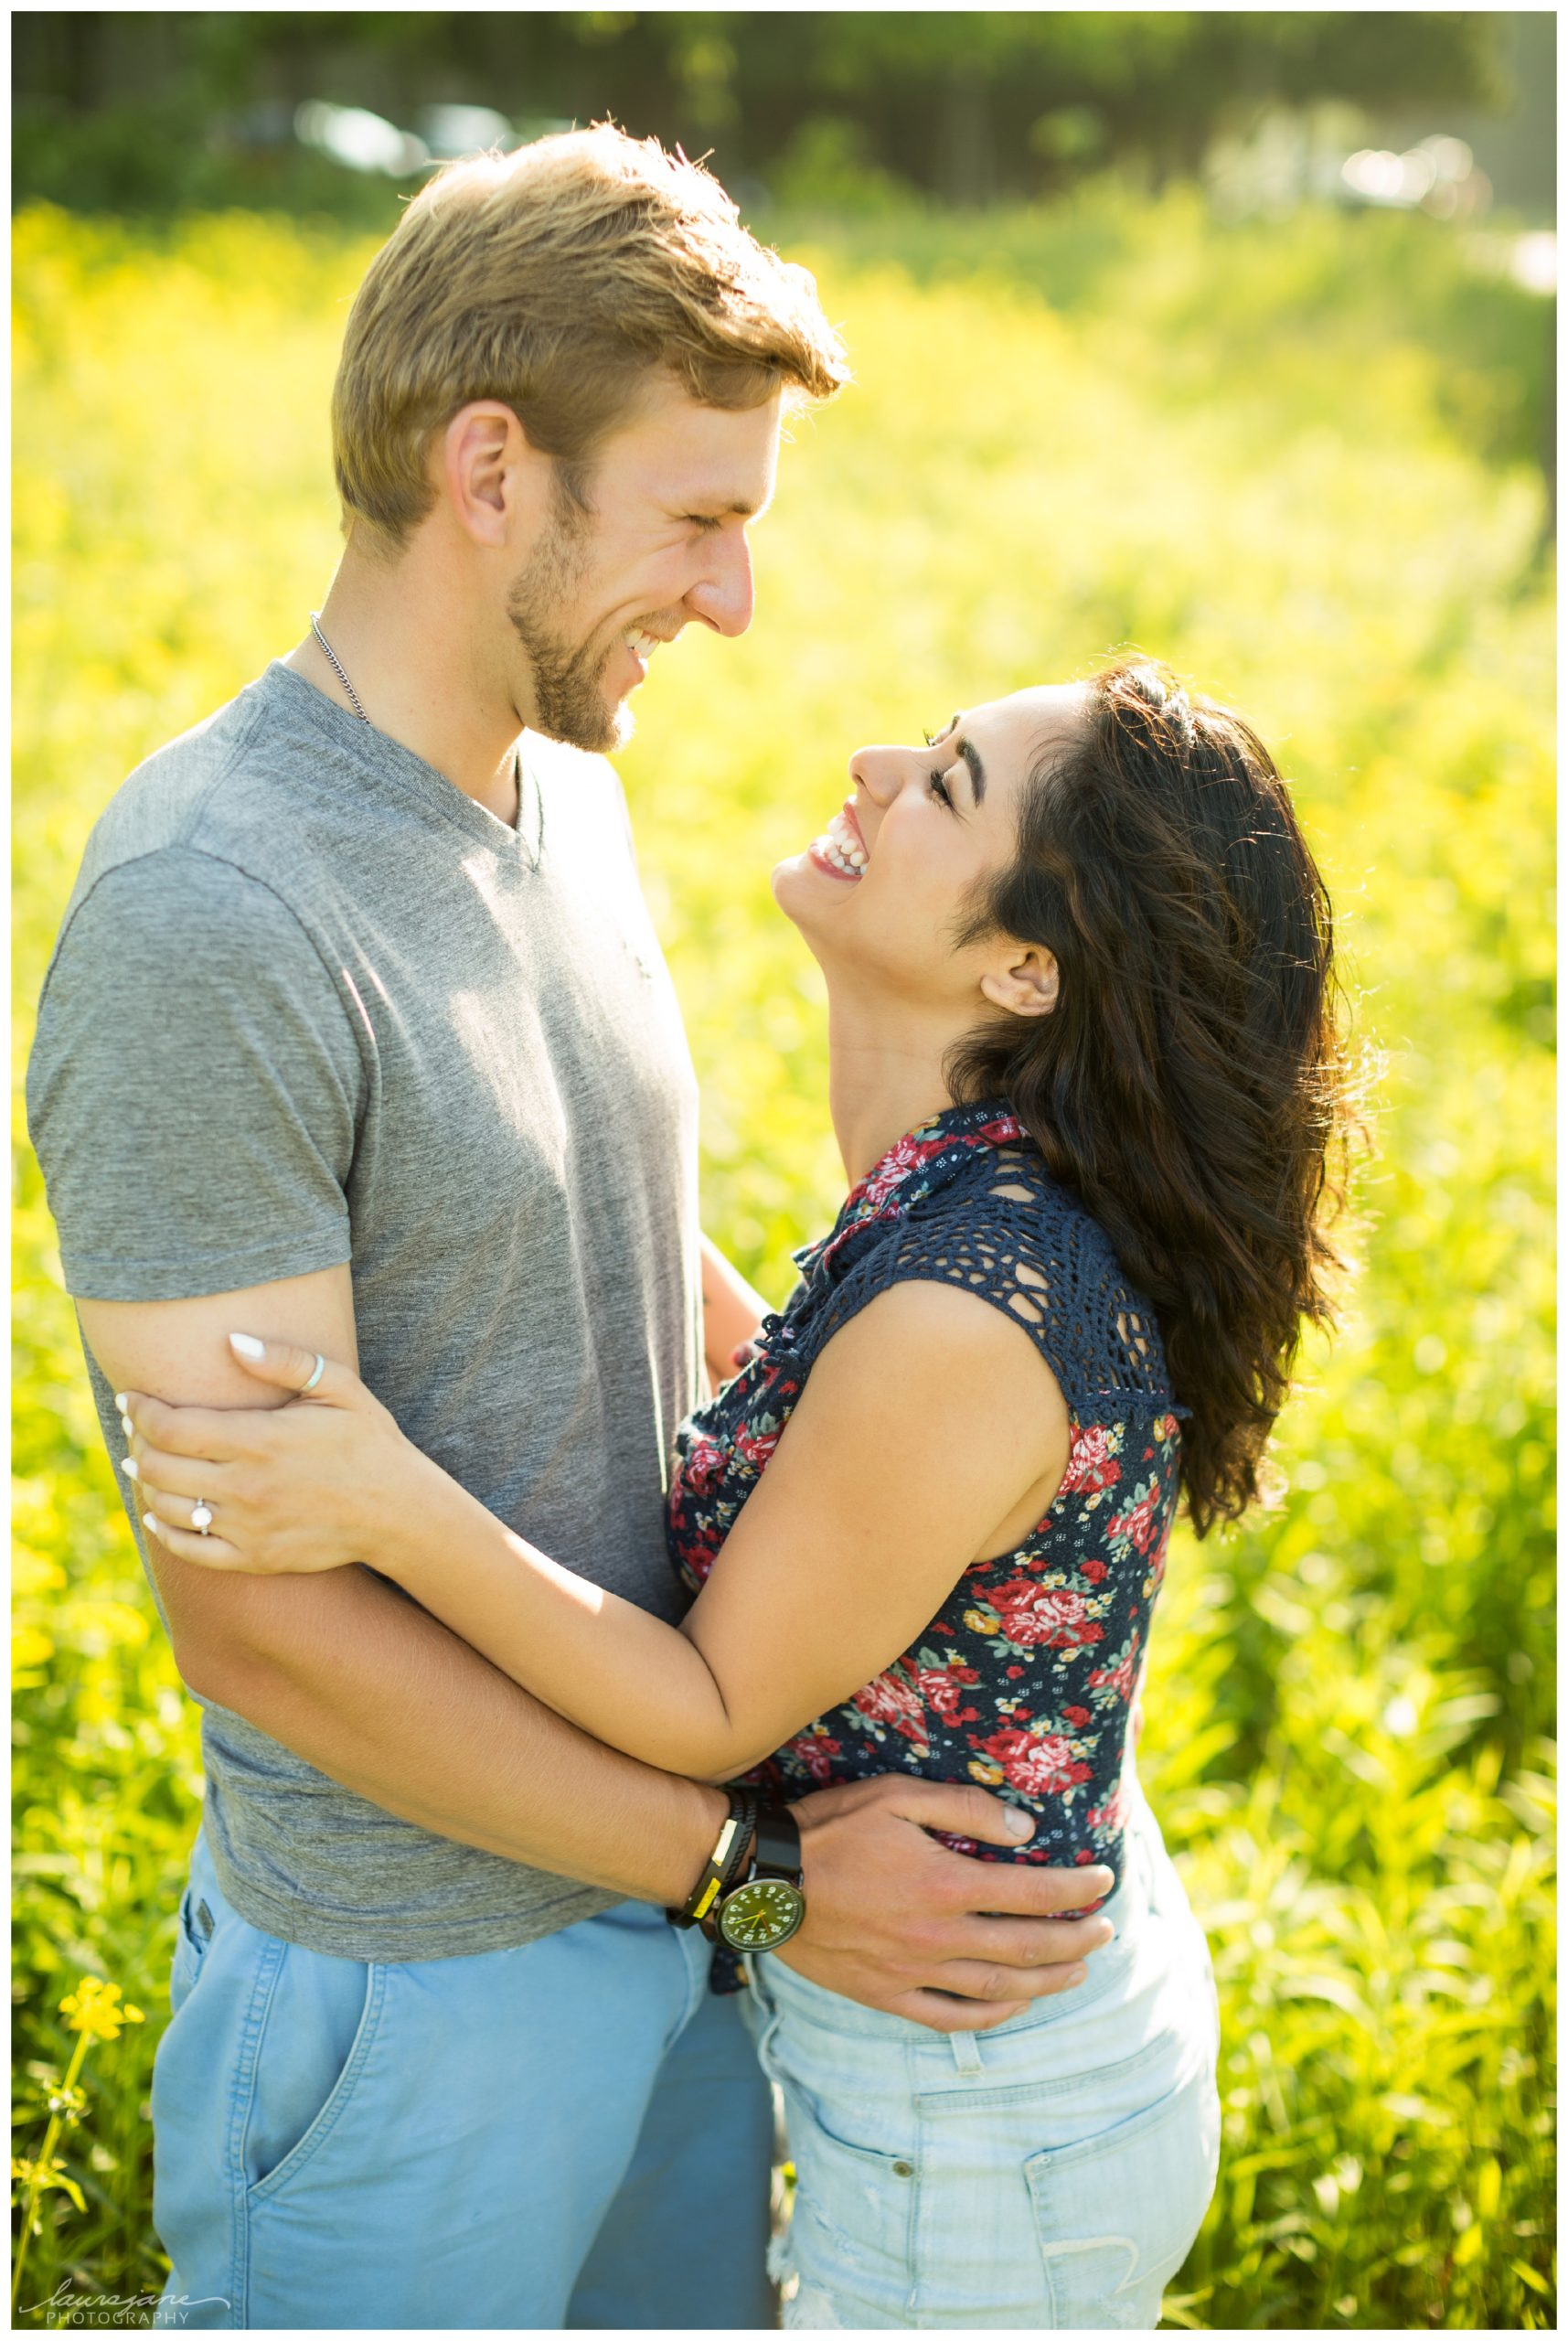 Laughing engagement pictures at Waukesha park